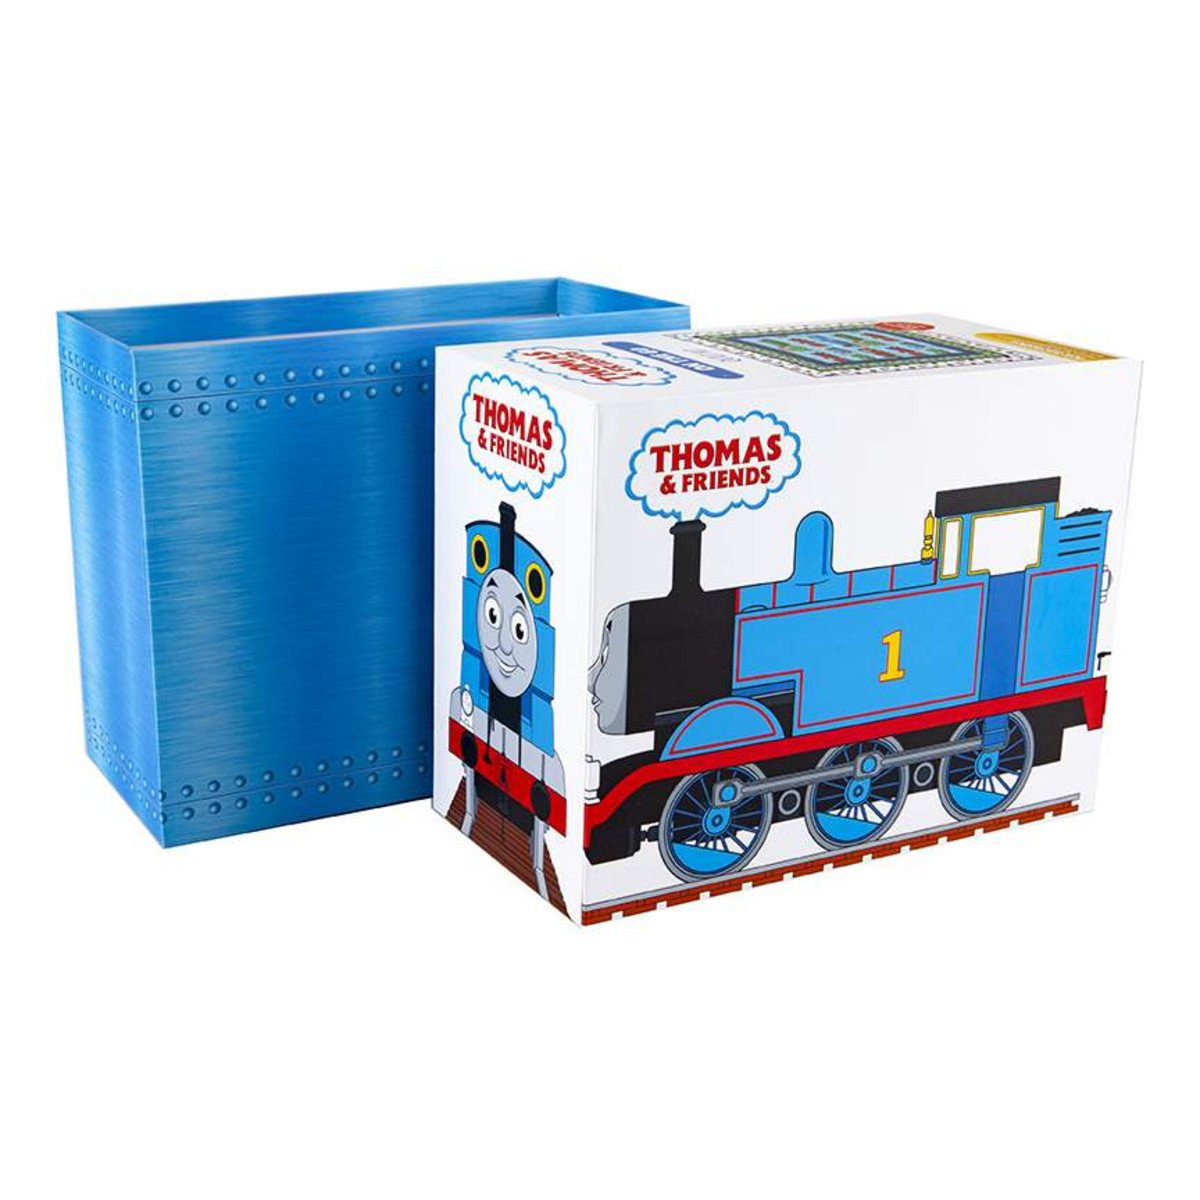 Thomas and Friends On the Go Quilt Kit